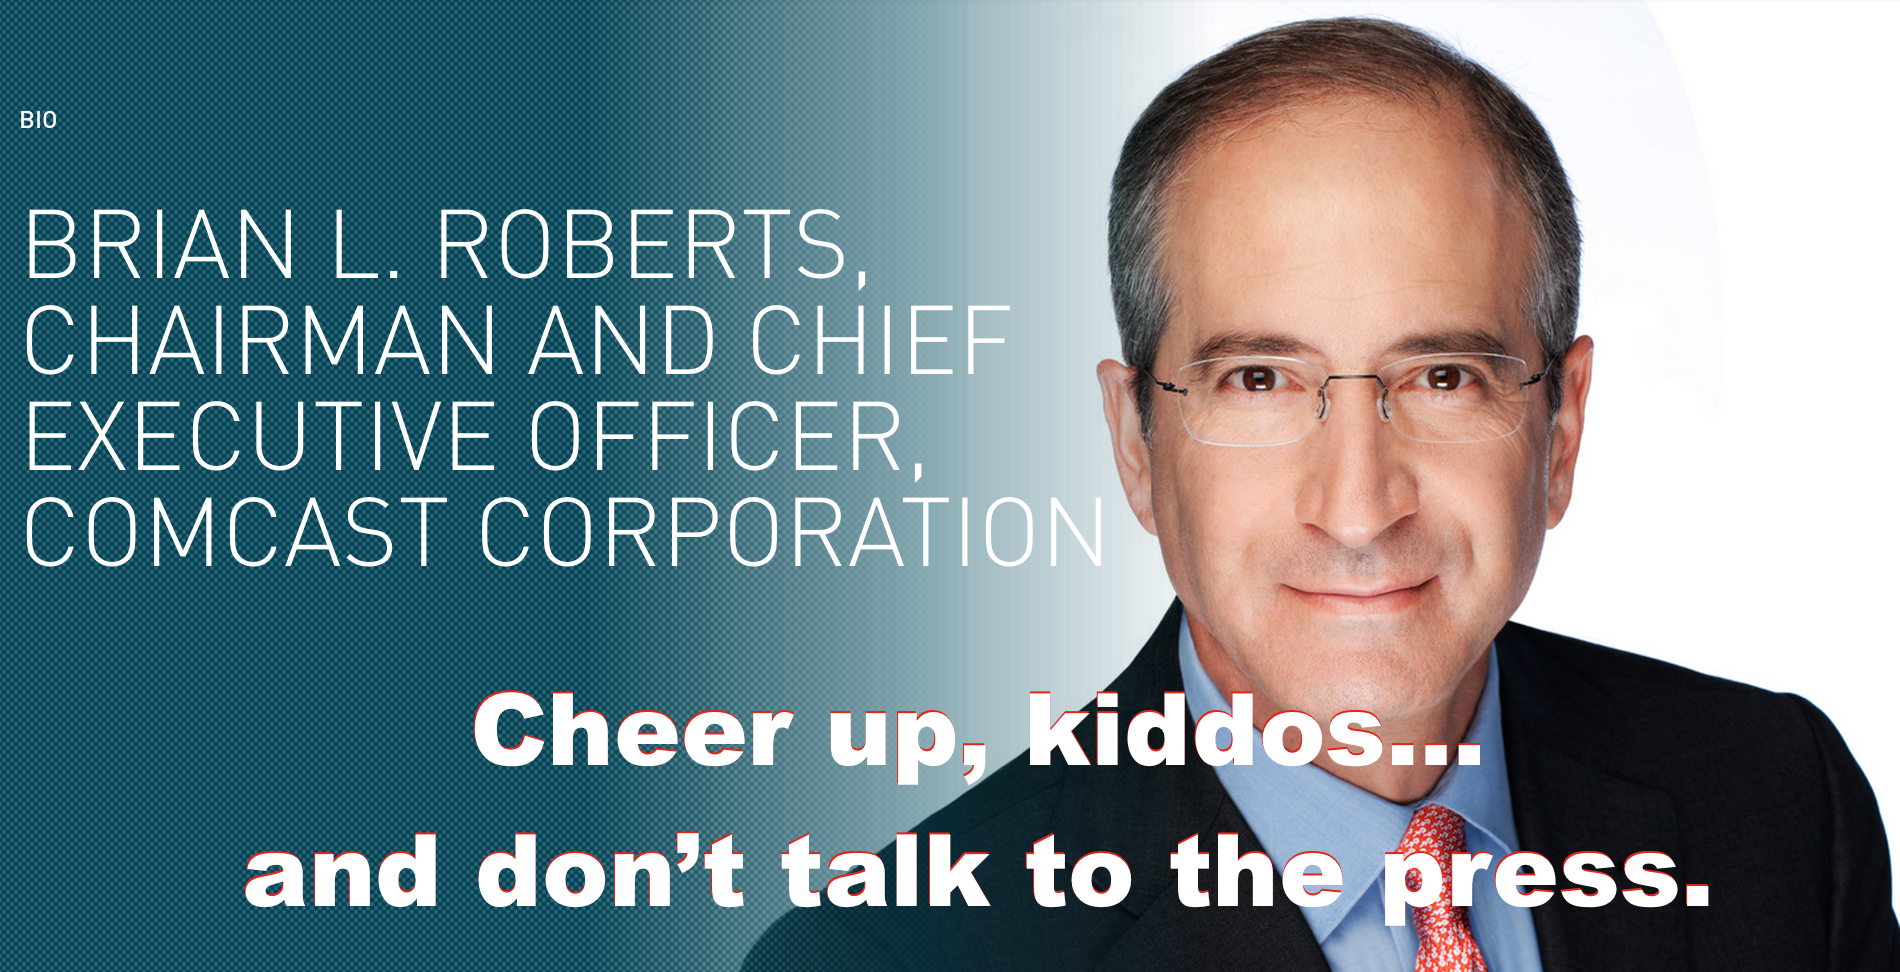 comcast ceo tries to cheer up employees following implosion of time